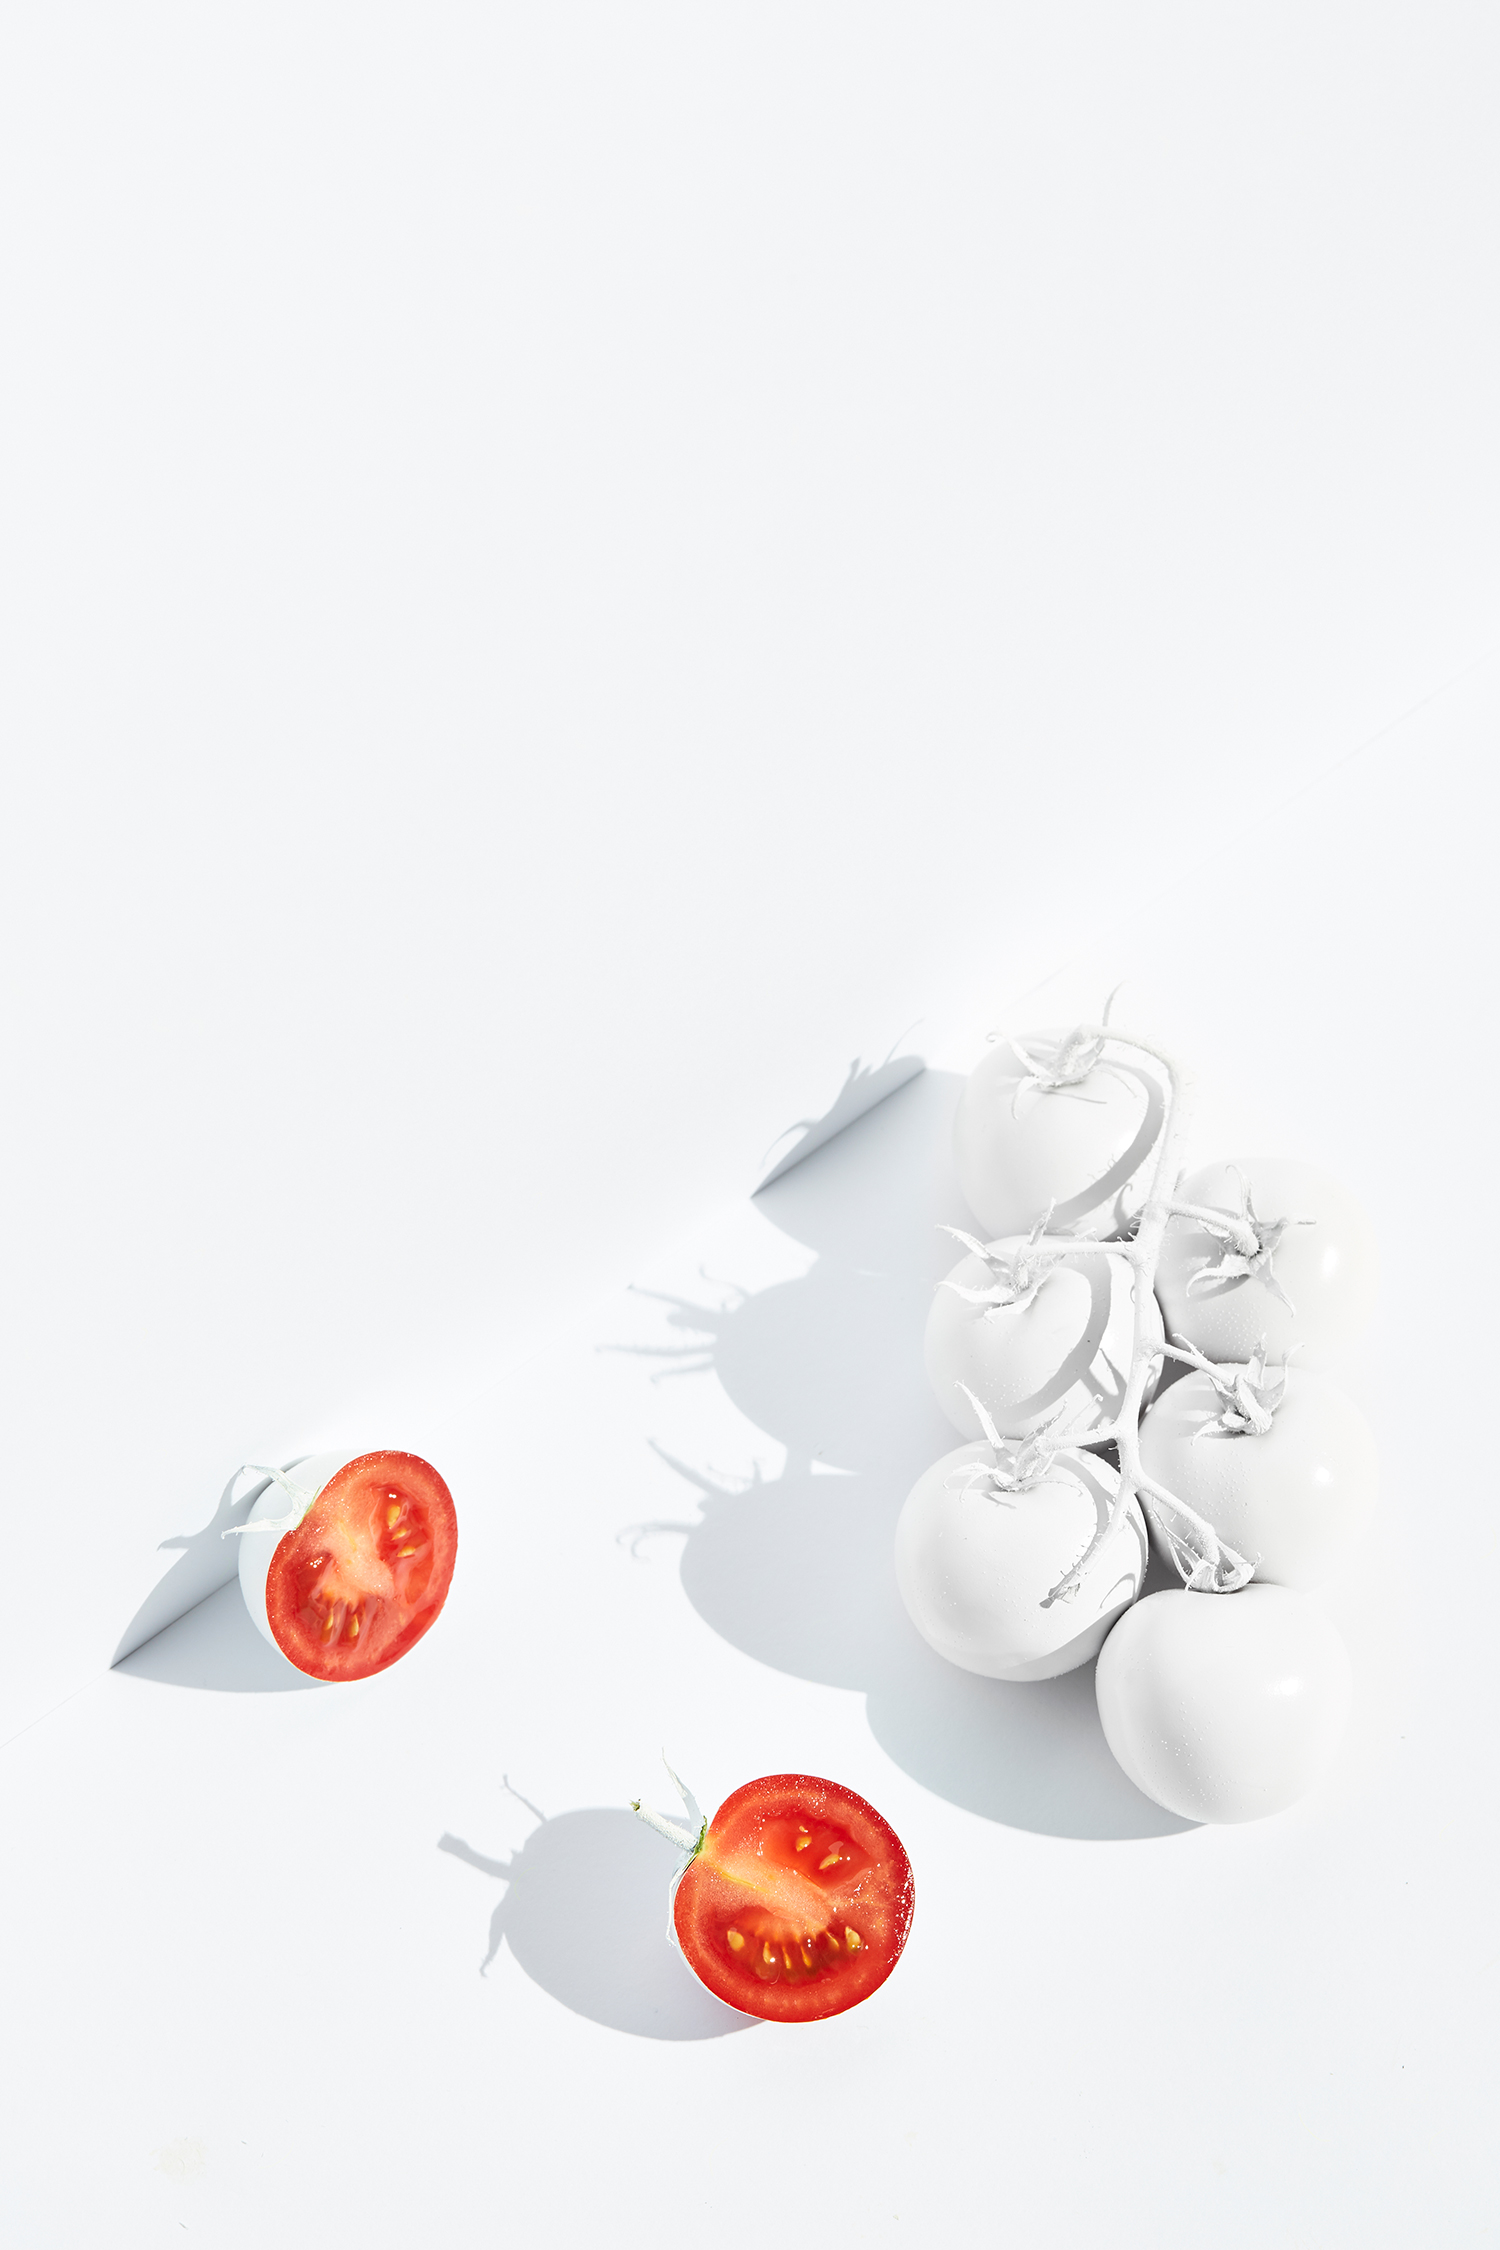 TOMATOES shot by Sydney advertising, Interior, food and lifestyle photographer Benito Martin